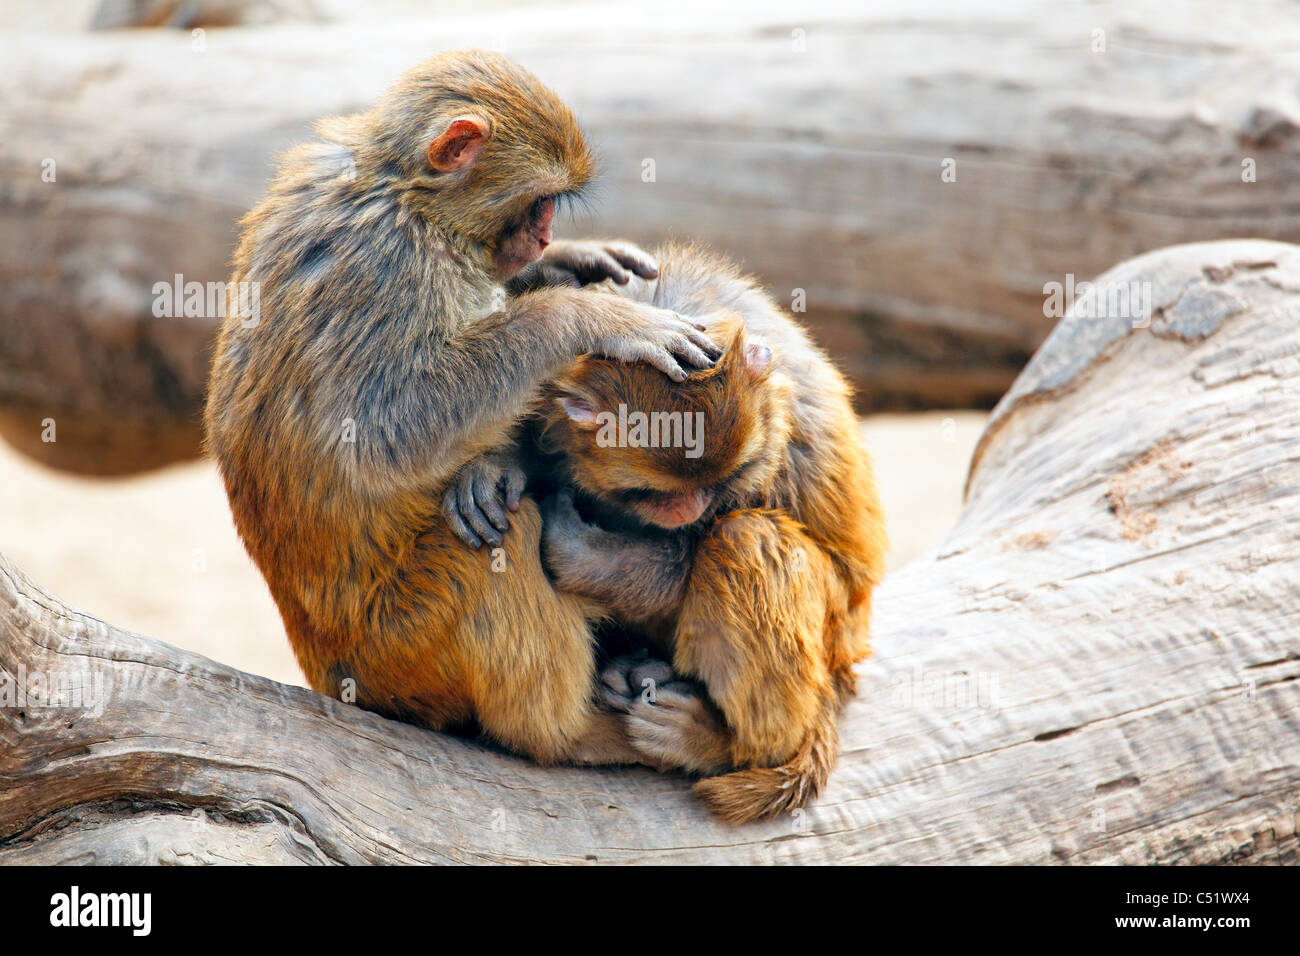 Deux singes rhésus, d'interagir sur un arbre, Quingling Mountain Zoo, Xian, Shaanxi, Chine Photo Stock